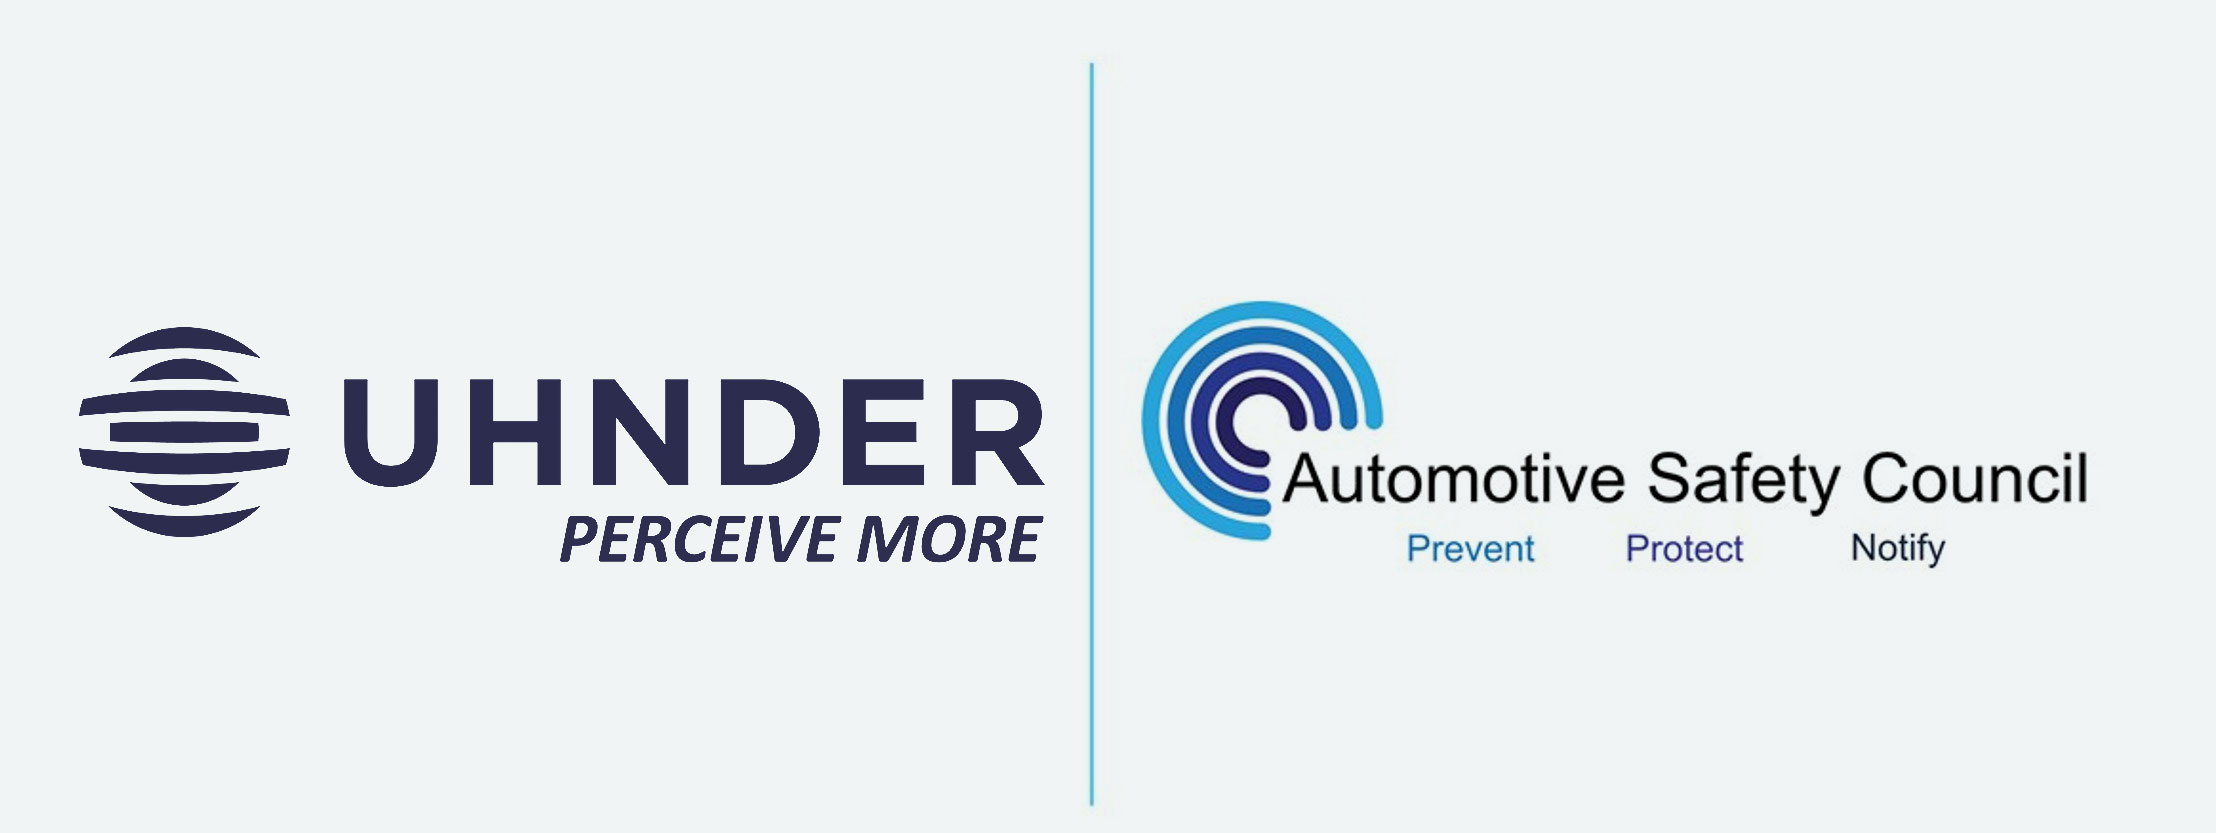 Uhnder Joins Automotive Safety Council to Advance Road Safety for ADAS and AVs